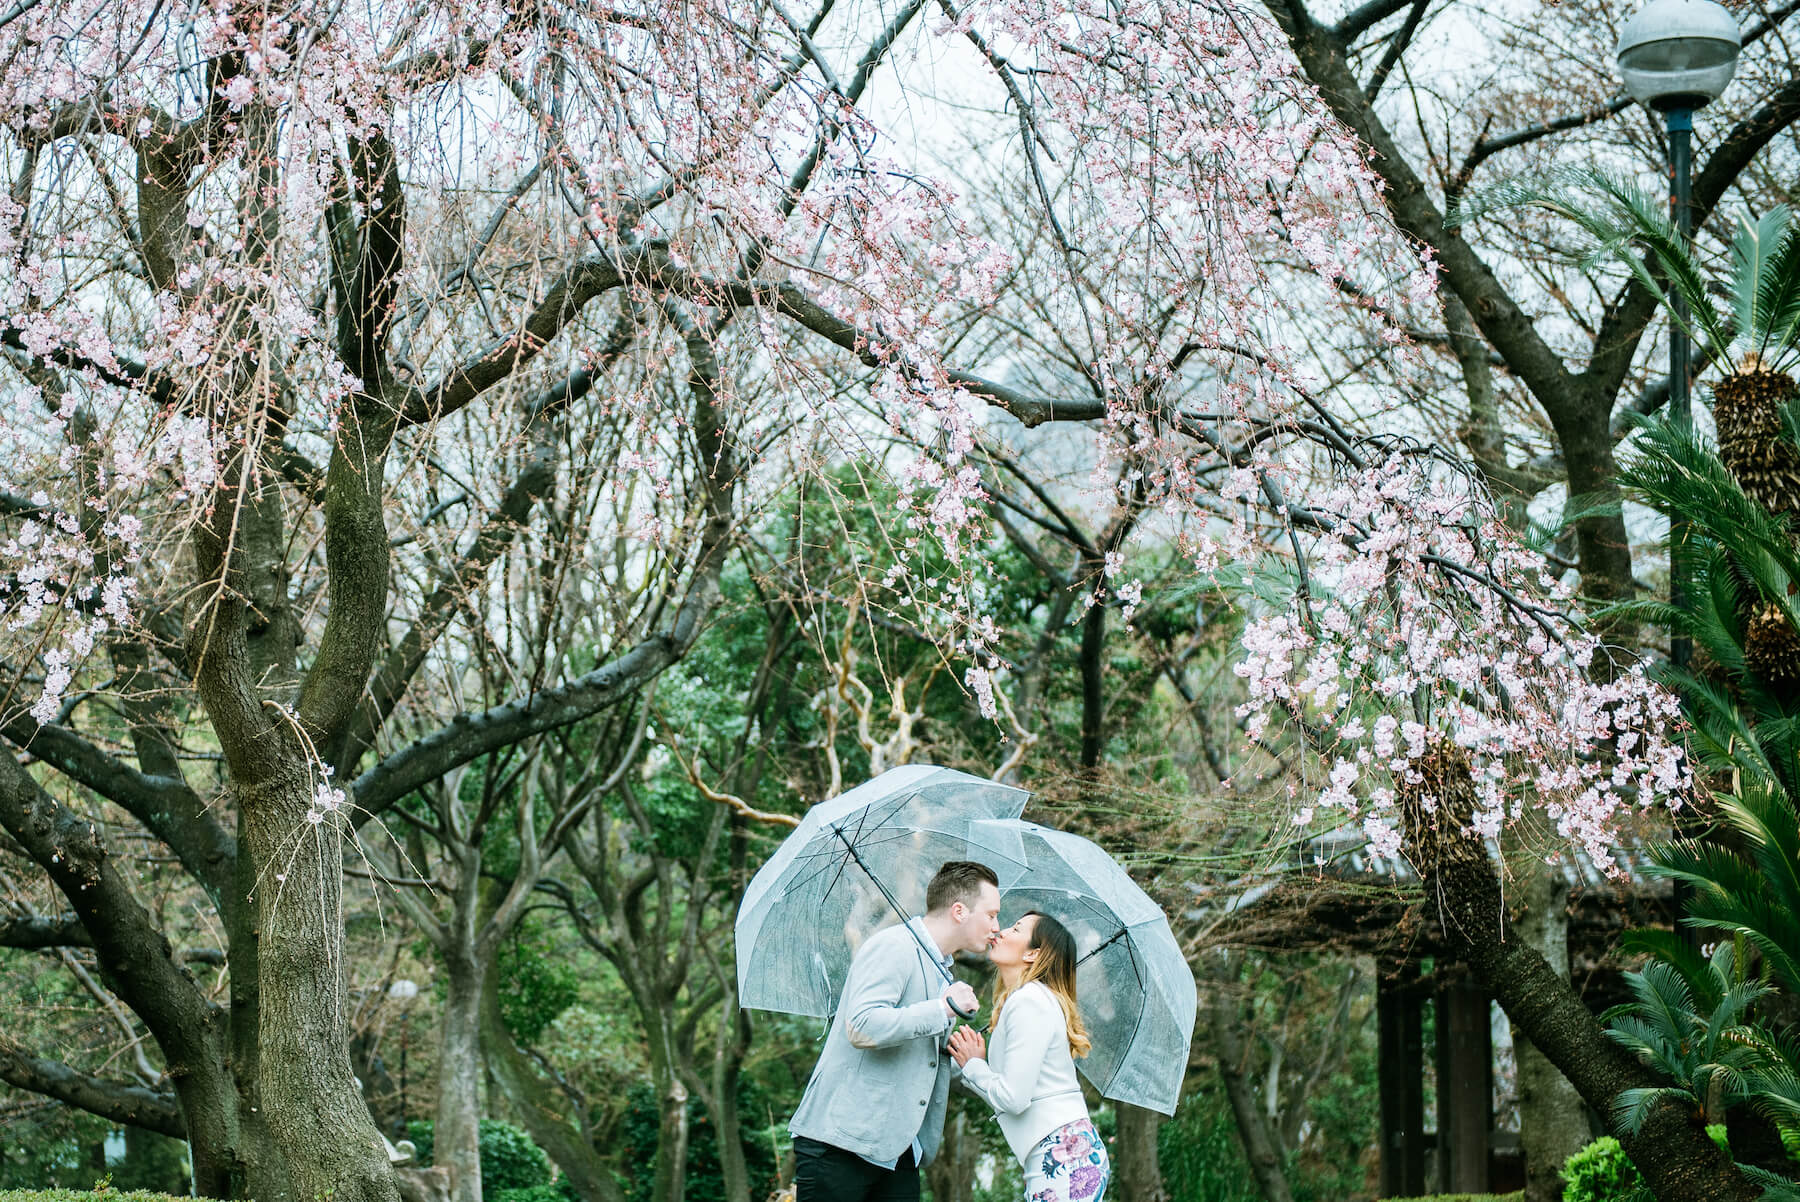 couple standing under cherry blossom tree with clear umbrellas as it's raining in Tokyo, Japan